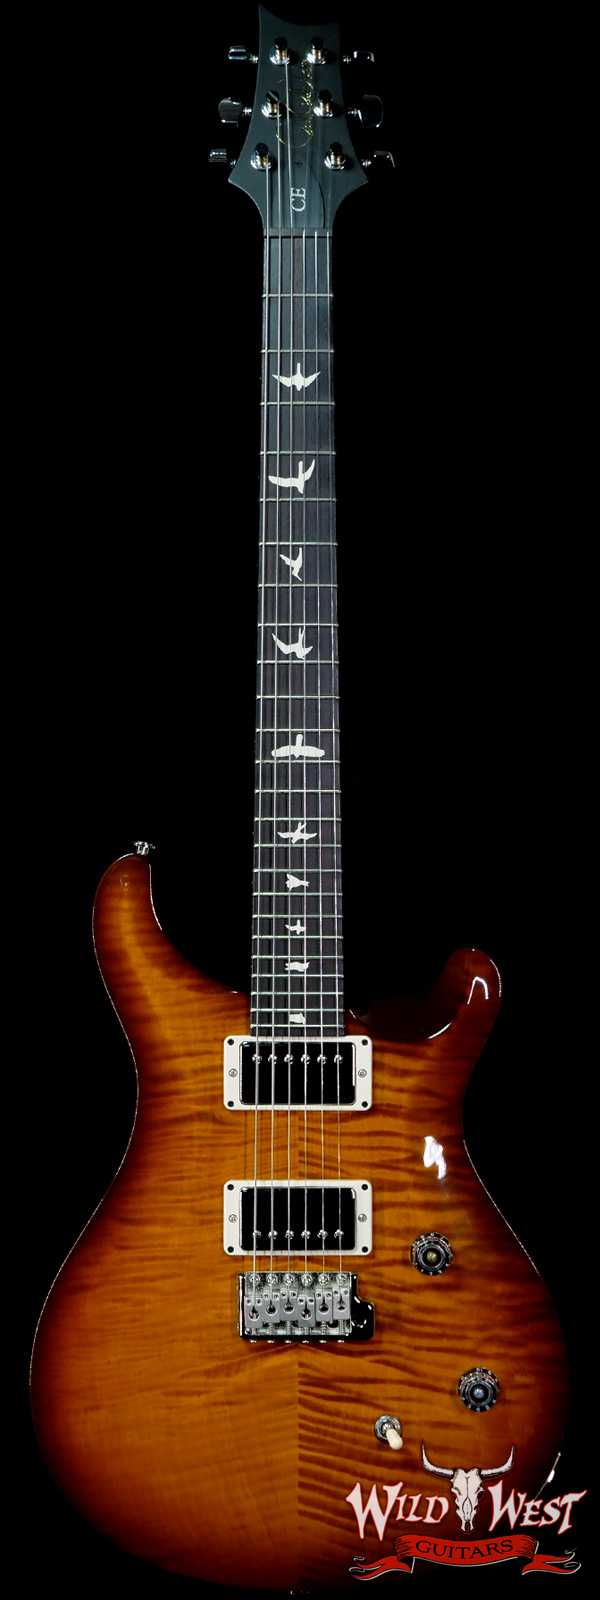 Paul Reed Smith PRS Wild West Guitars Special Run Flame Top Black Neck CE 24 Violin Amber Burst (Blemish)